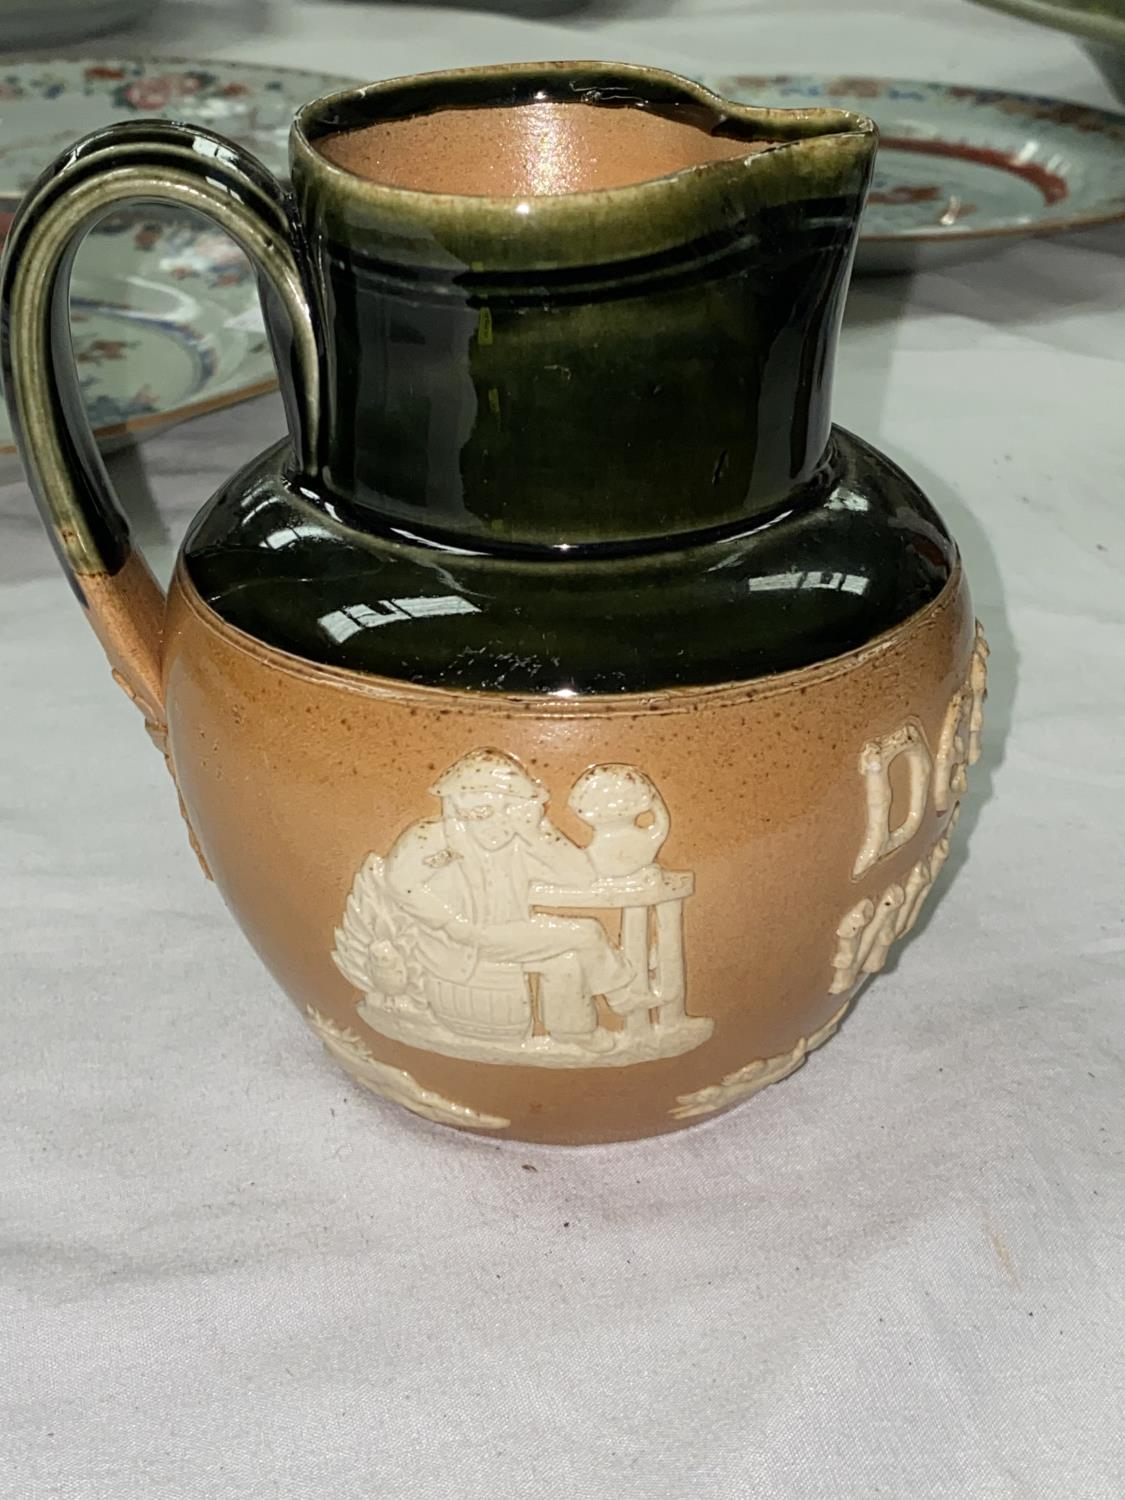 A DEWAR'S WHISKY Doulton stoneware advertising jug, 13cm (small chip to rim) - Image 3 of 5